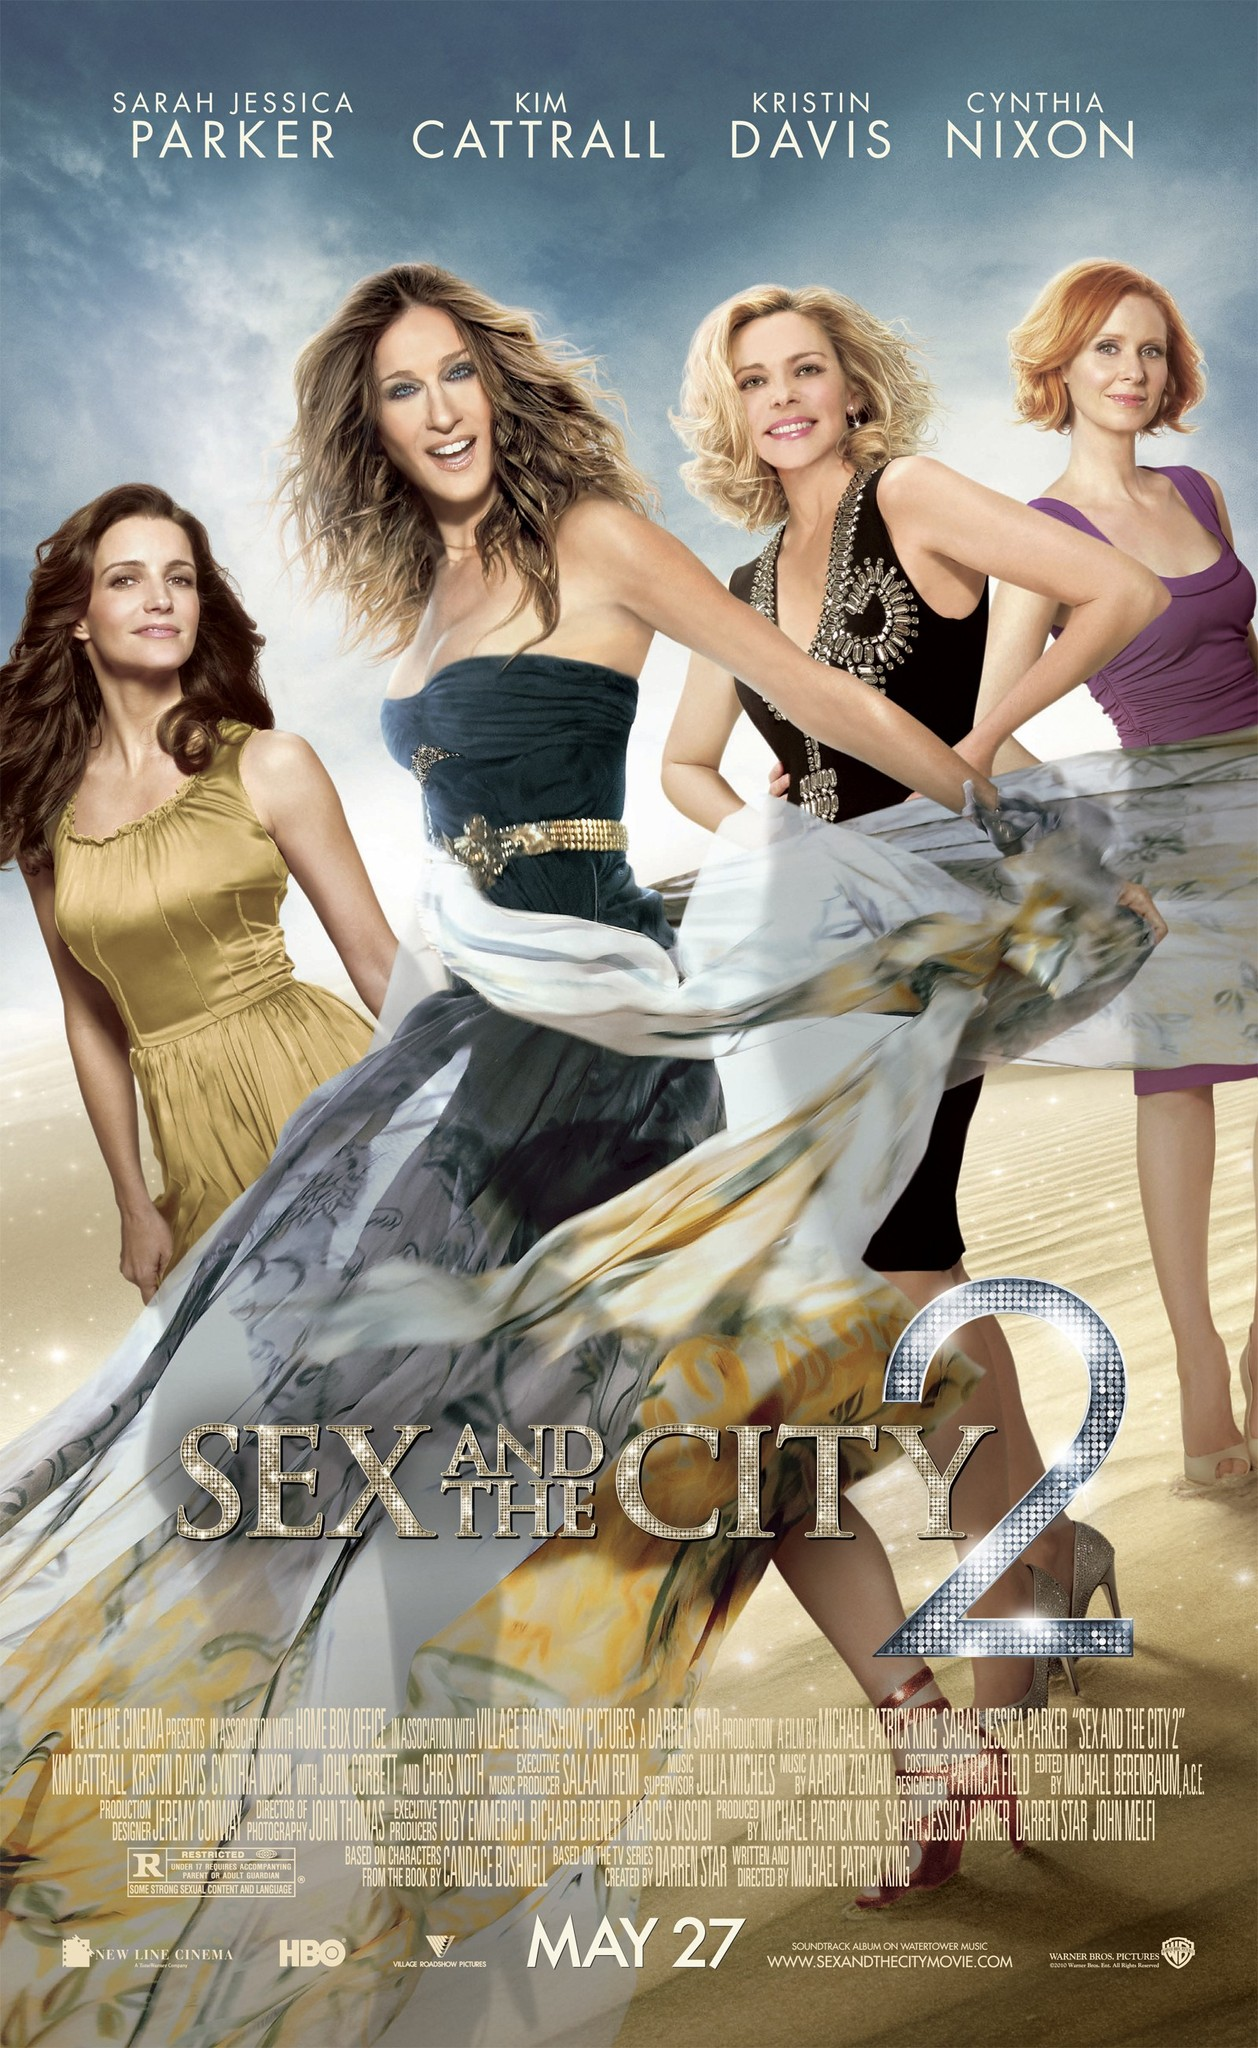 I watch sex and the city online for